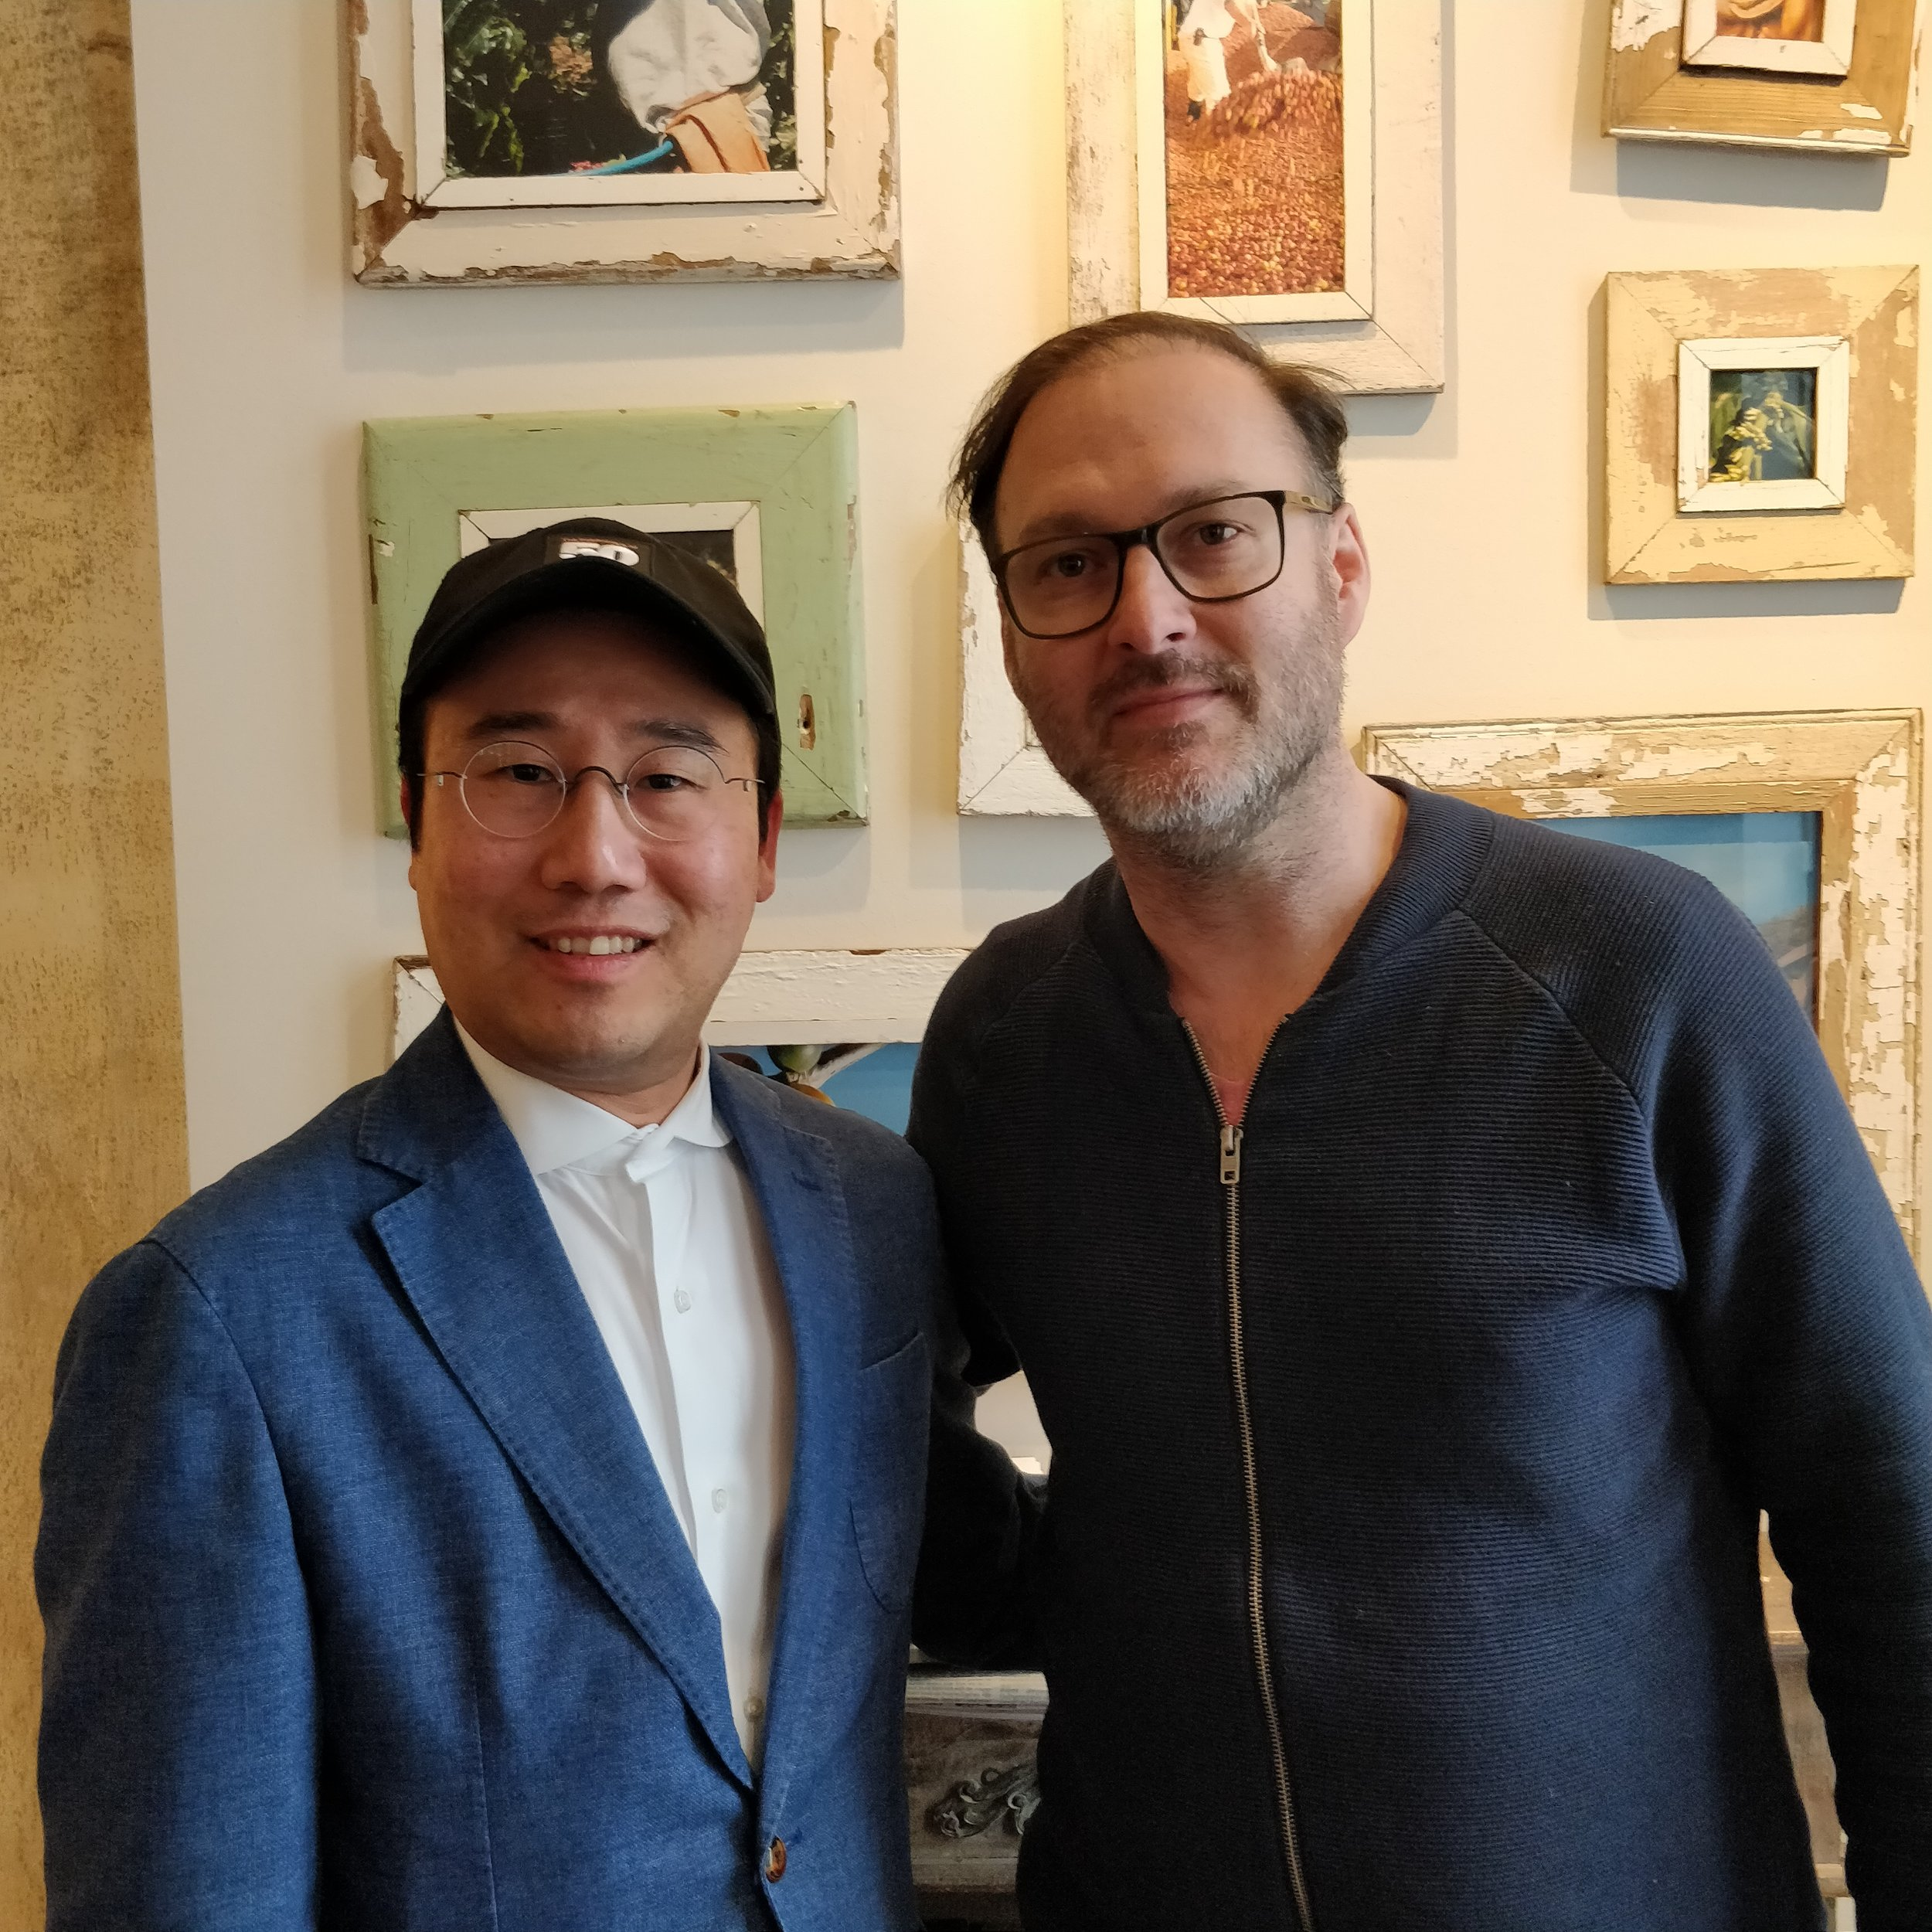 Founder of Lindenbaum Festival Orchestra, Hyung Joon Won with Cinema for Peace founder and Chairman, Jaka Bizilj.